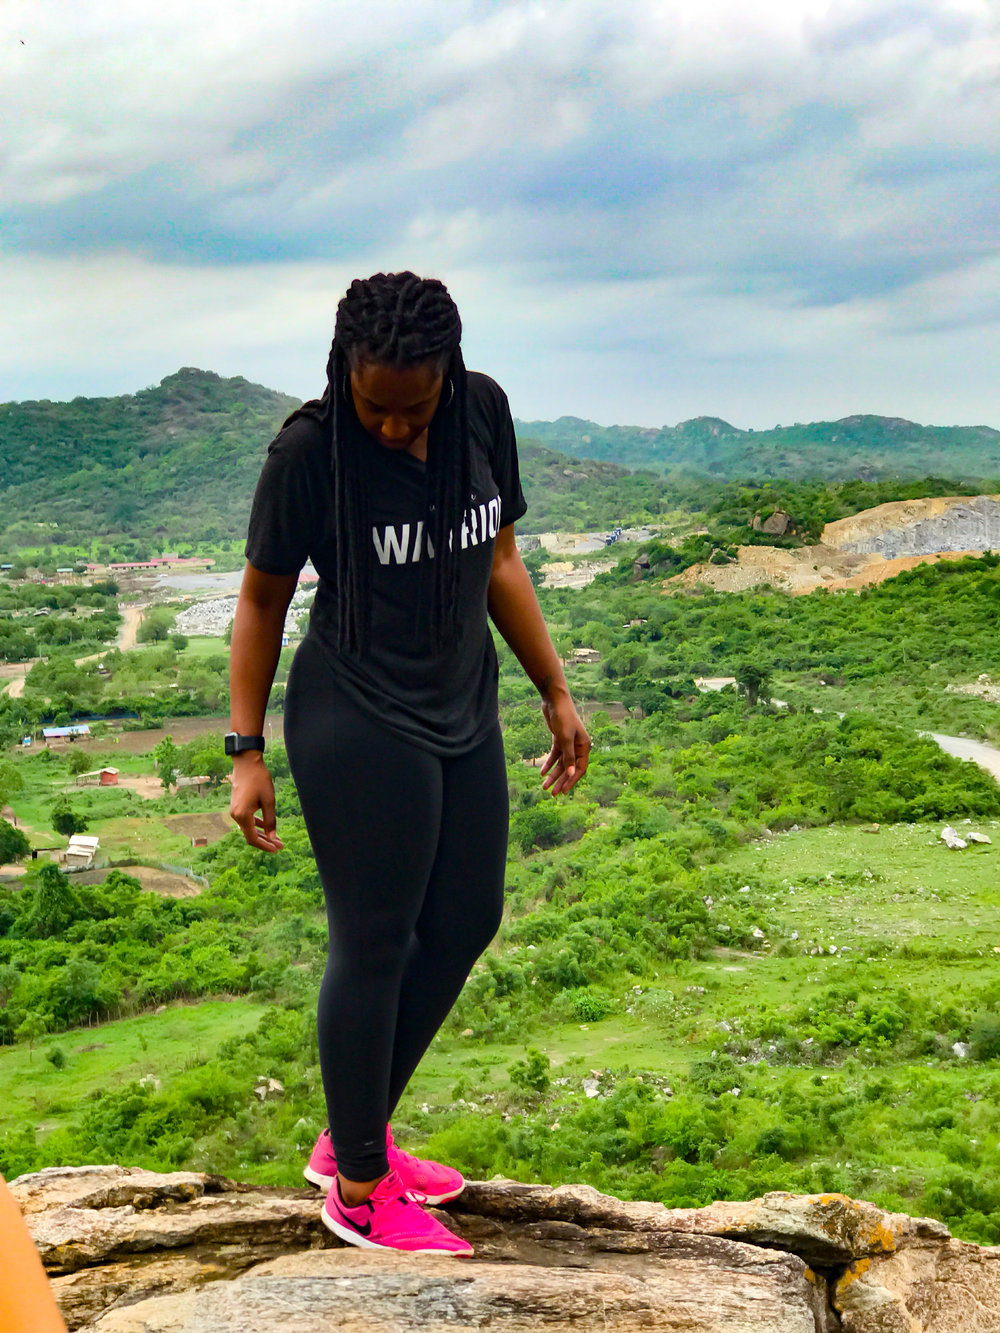 Atop Shai Hills, Greater Accra Region